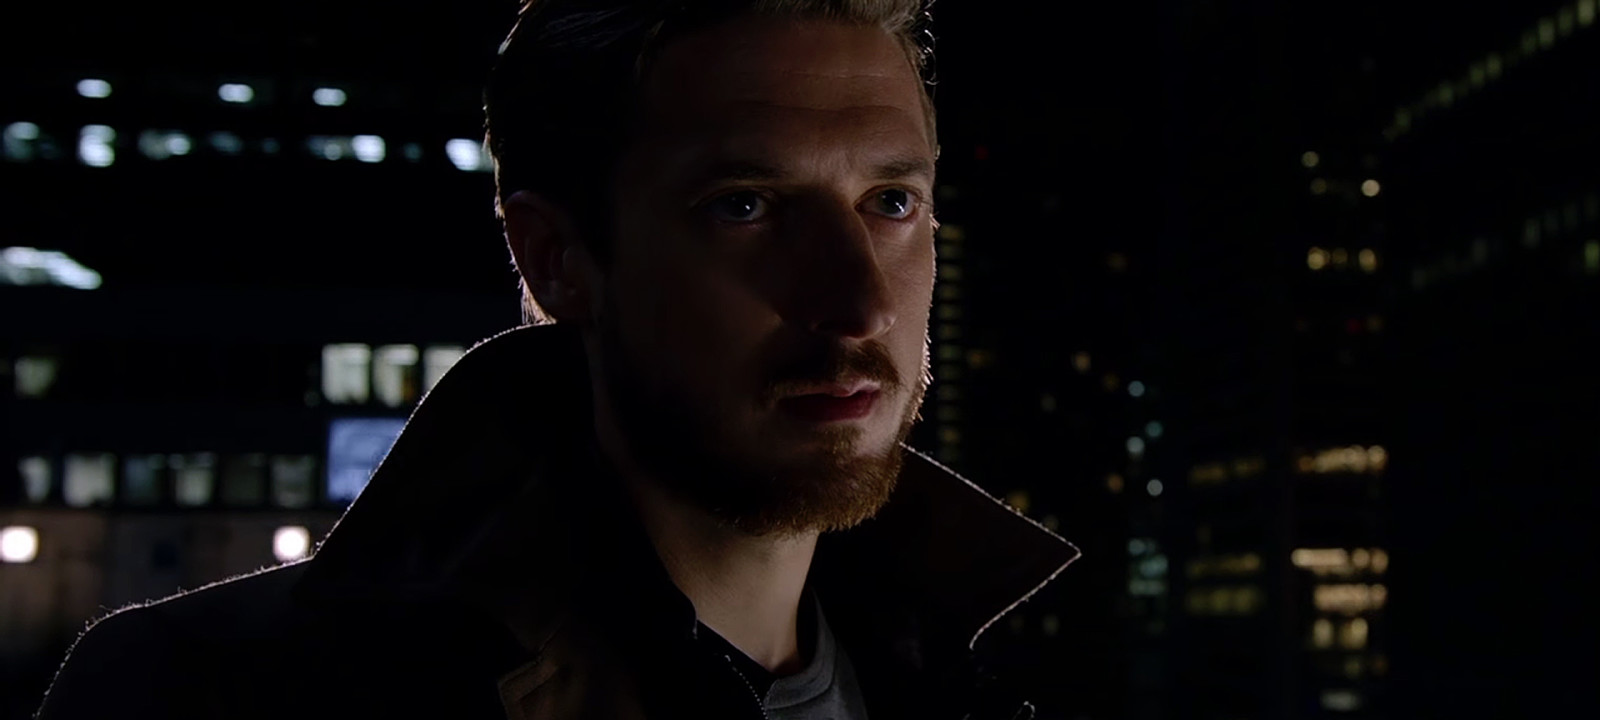 Arthur Darvill in 'DC's Legends of Tomorrow' (Photo: The CW)